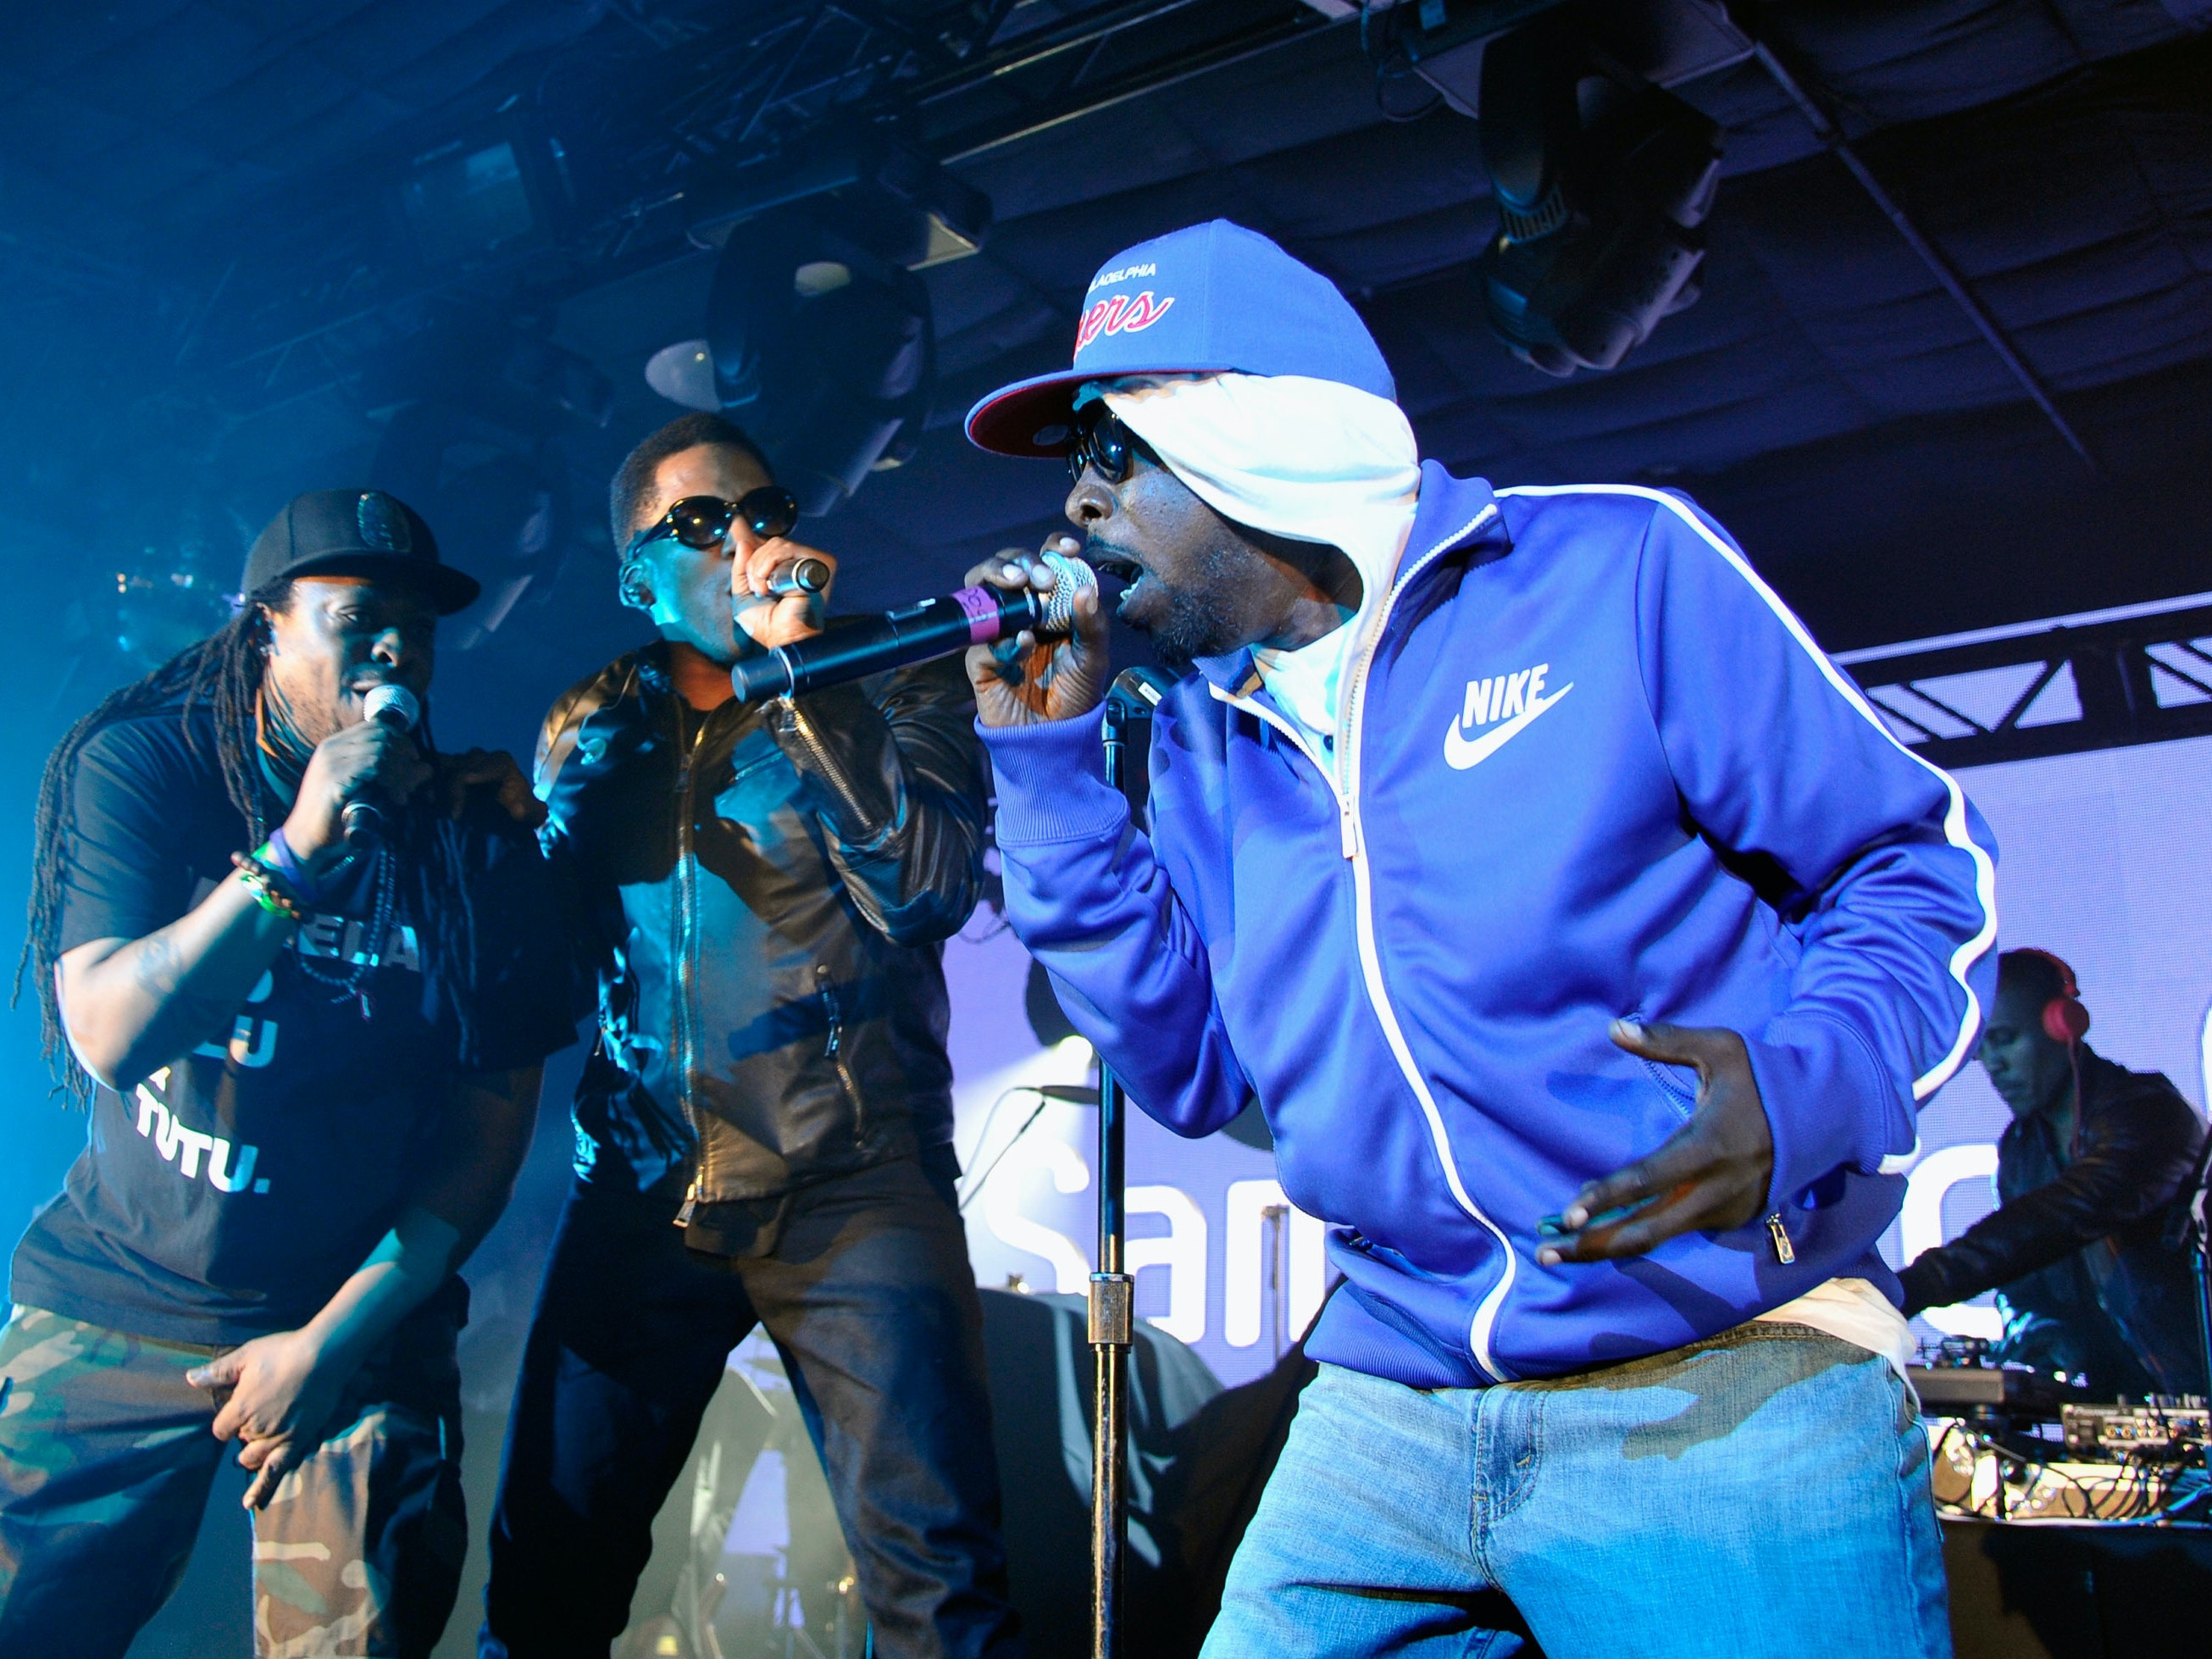 AUSTIN, TX - MARCH 16:  (L-R) Musicians Jarobi White, Q-Tip, Phife Dawg and Ali Shaheed Muhammad of A Tribe Called Quest perform as Samsung Galaxy Sound Stage presents A Tribe Called Quest and Prince at SXSW on March 16, 2013 in Austin, Texas.  (Photo by John Sciulli/Getty Images for Samsung)